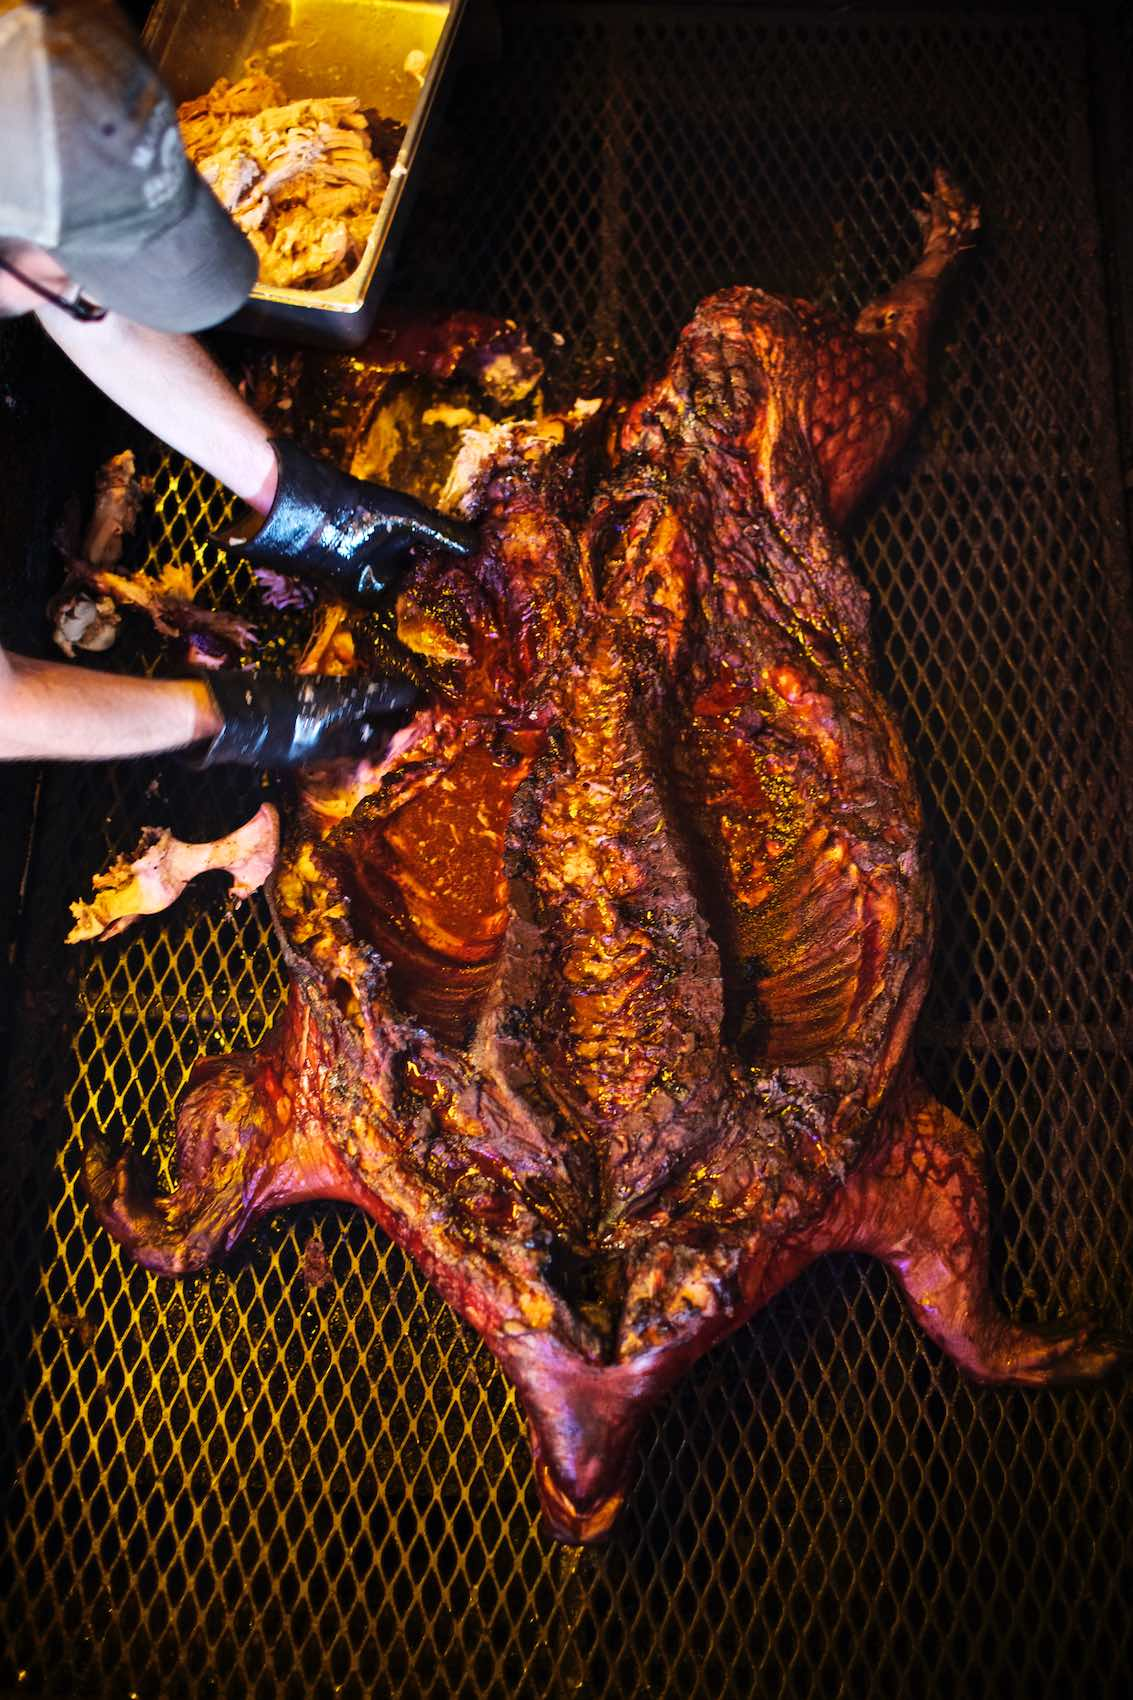 Jody Horton Photography - Inside of whole cooked hog from above.